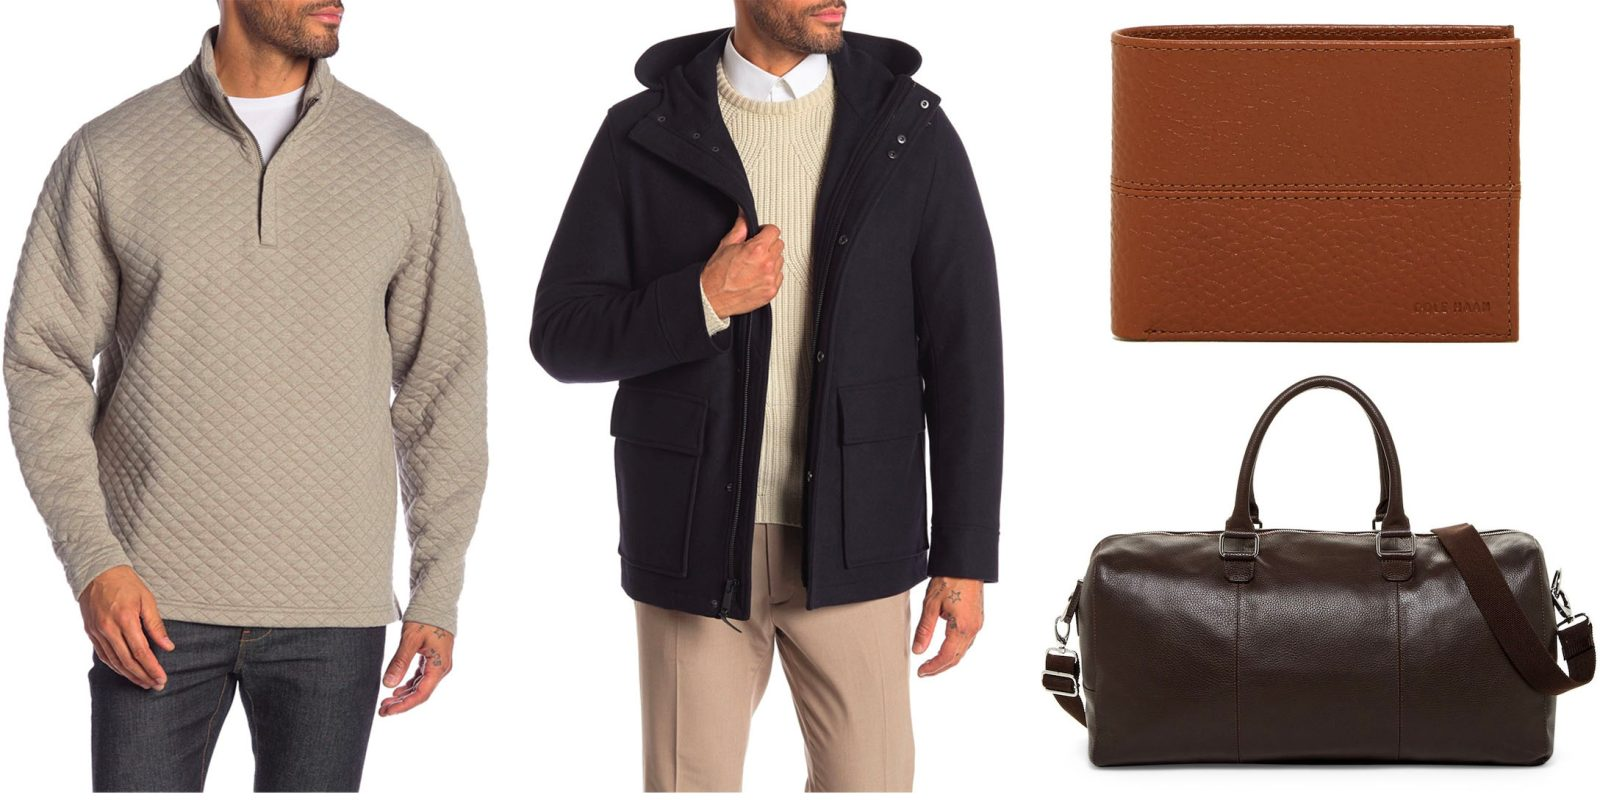 535f2246d0 Cole Haan wallets, apparel, backpacks and more from $20 during Hautelook's  Flash Sale